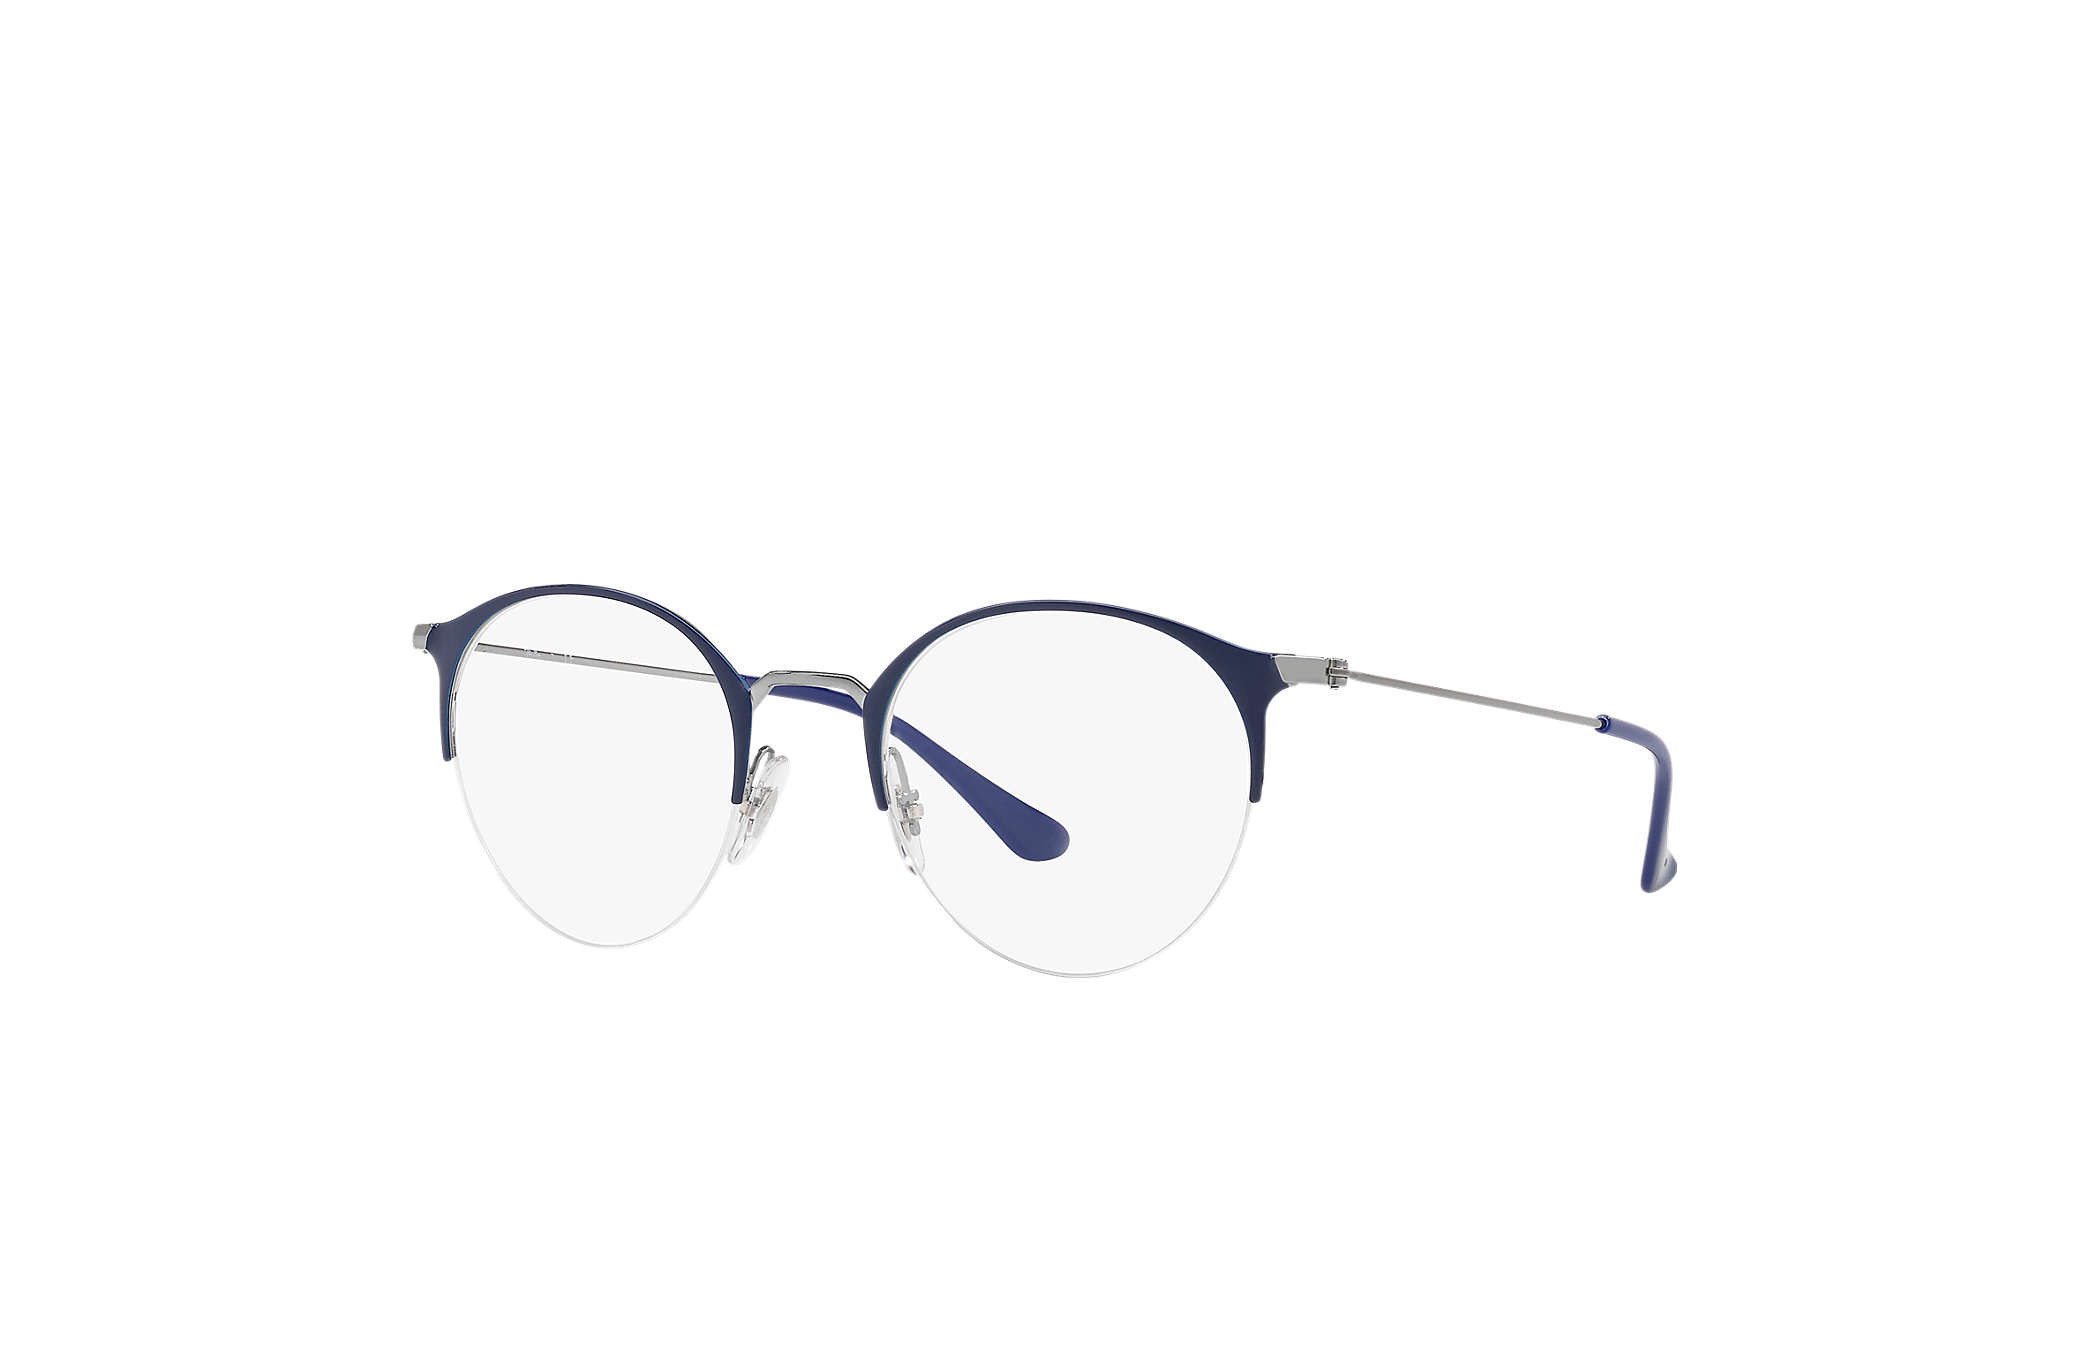 X Ray Gl802 Neon Blue besides Prism Rectanglar Frames Green moreover Coach Pink Aviator Sunglasses additionally Home in addition Wiley X Saint Polarized Fishing Sunglasses. on ray ban prescription gl